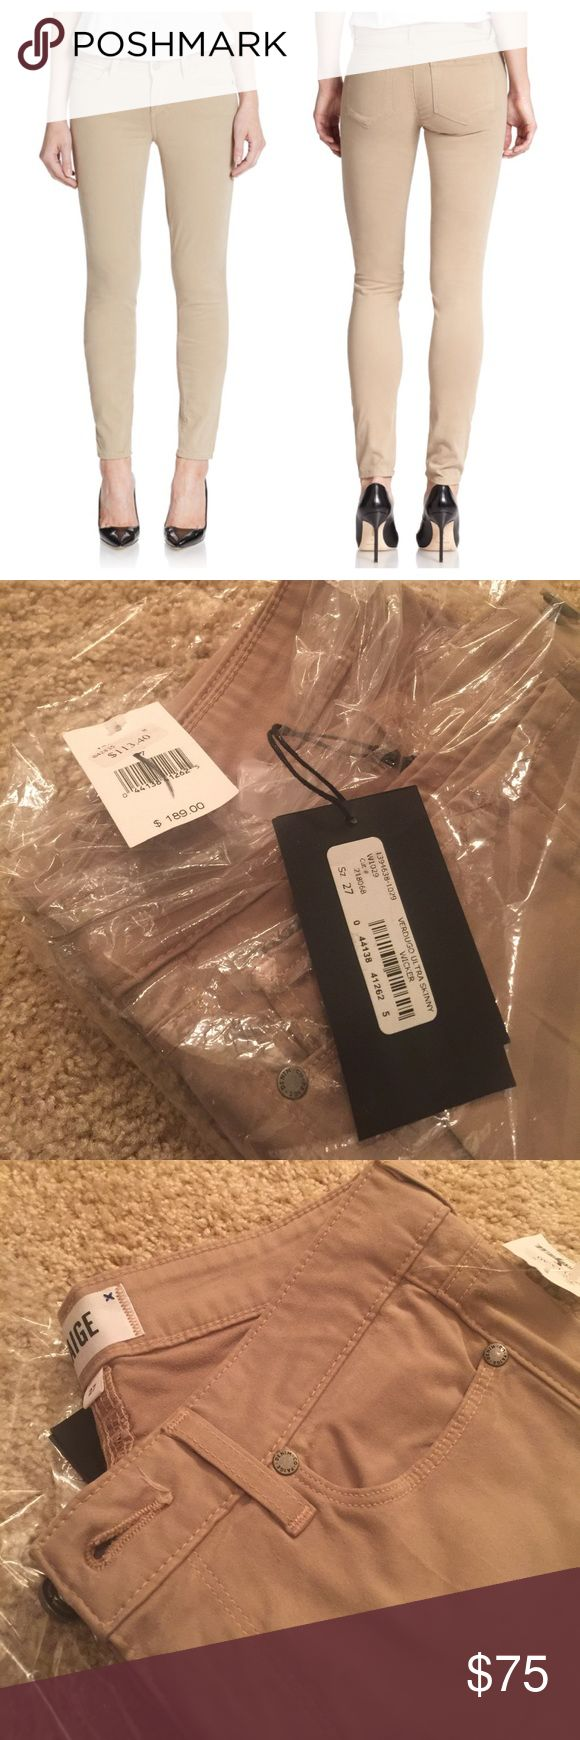 NWT! PAIGE Verdugo Ultra Skinny Wicker Beige Jeans Brand new with tags. Paige Jeans Pants Skinny